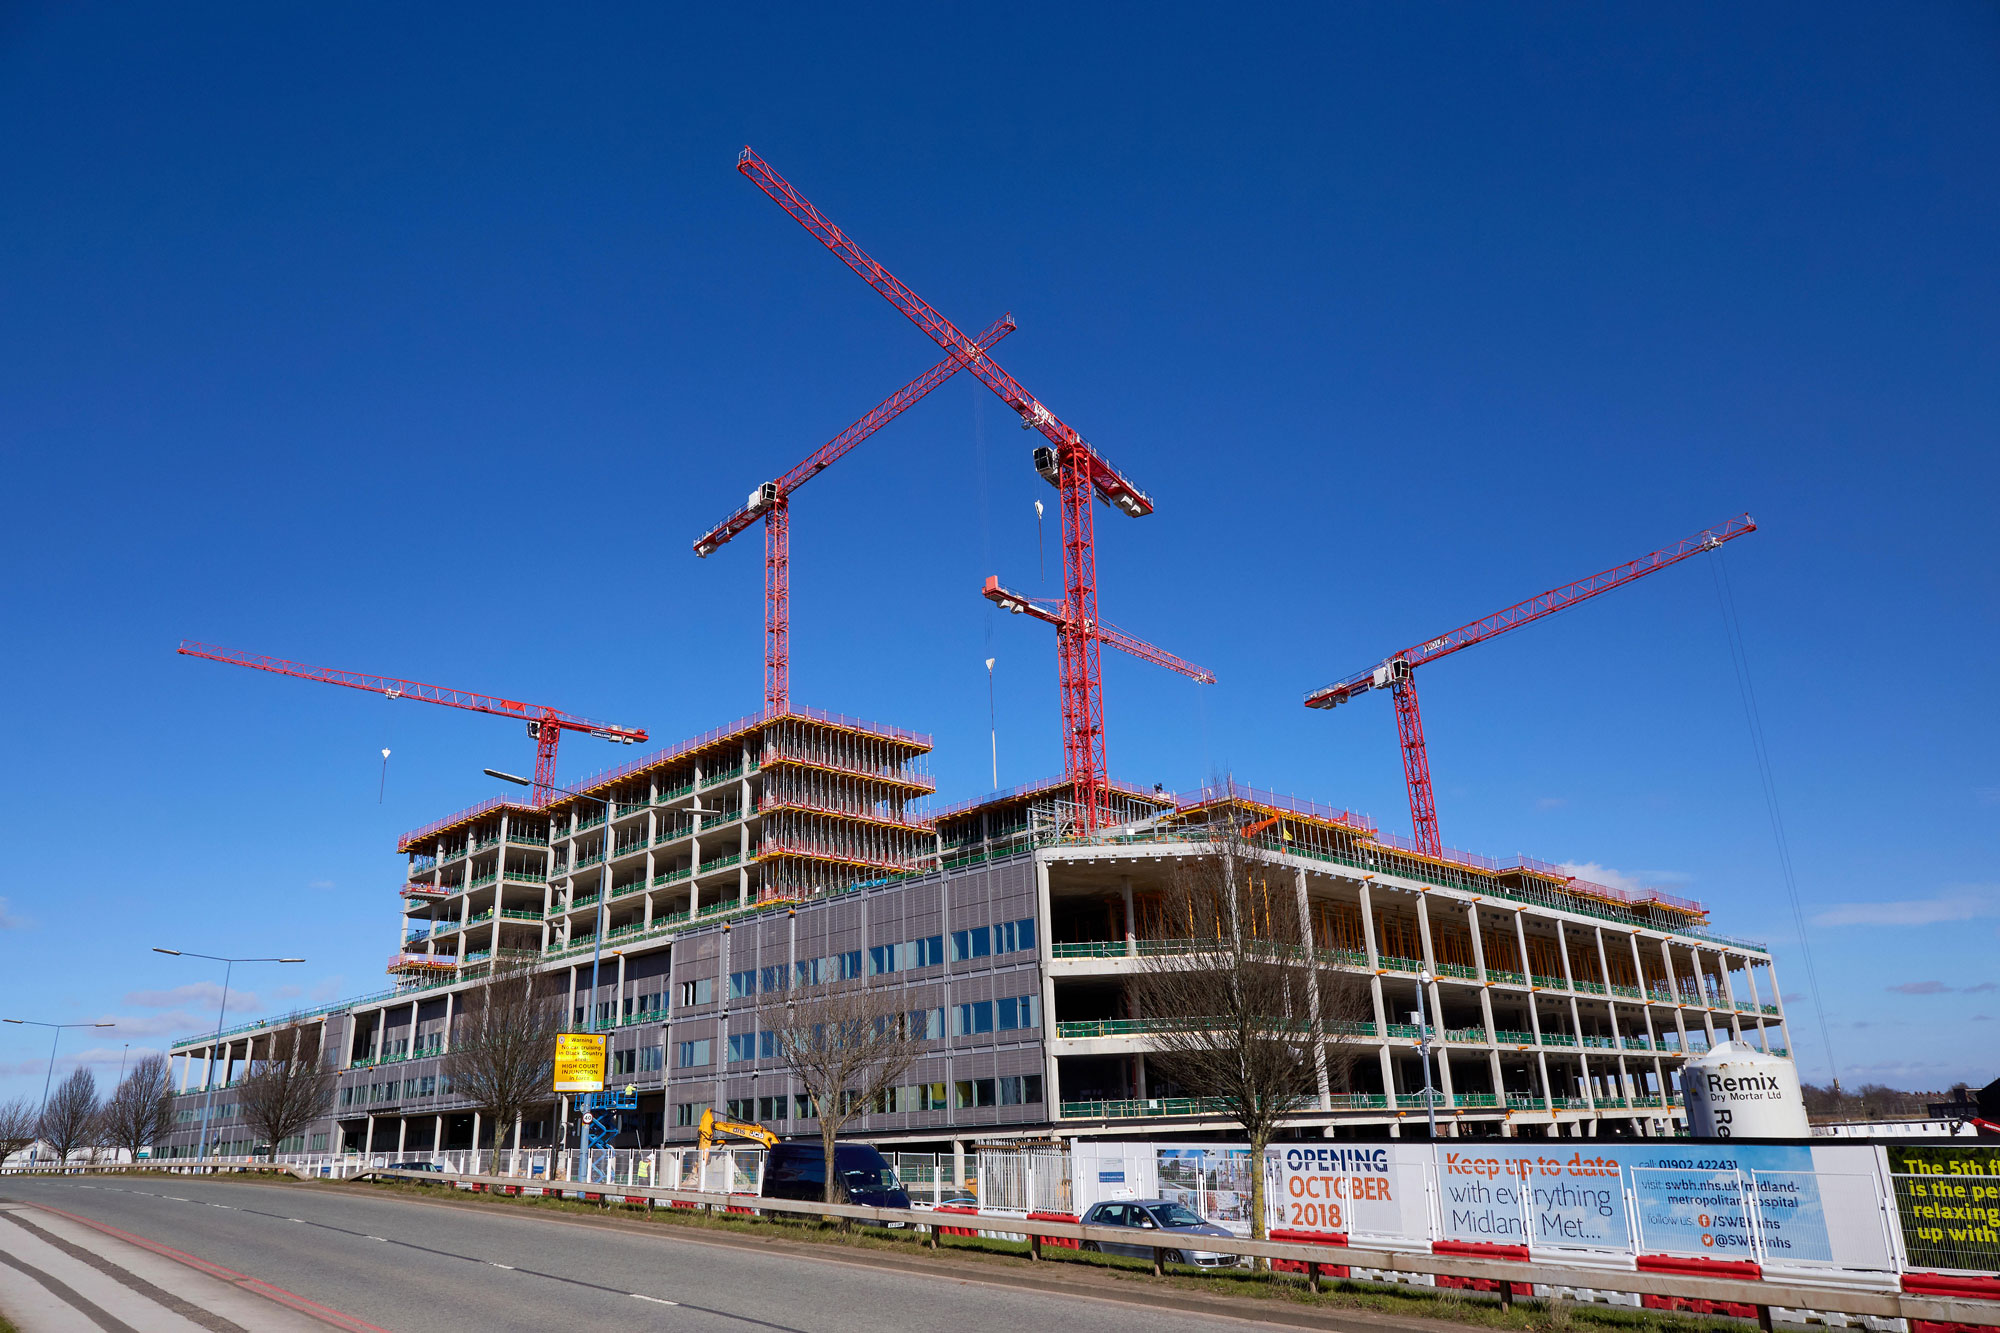 Midland Metropolitan Hospital cost £353m but may never be completed. Photo: Jon Lewis/Alamy